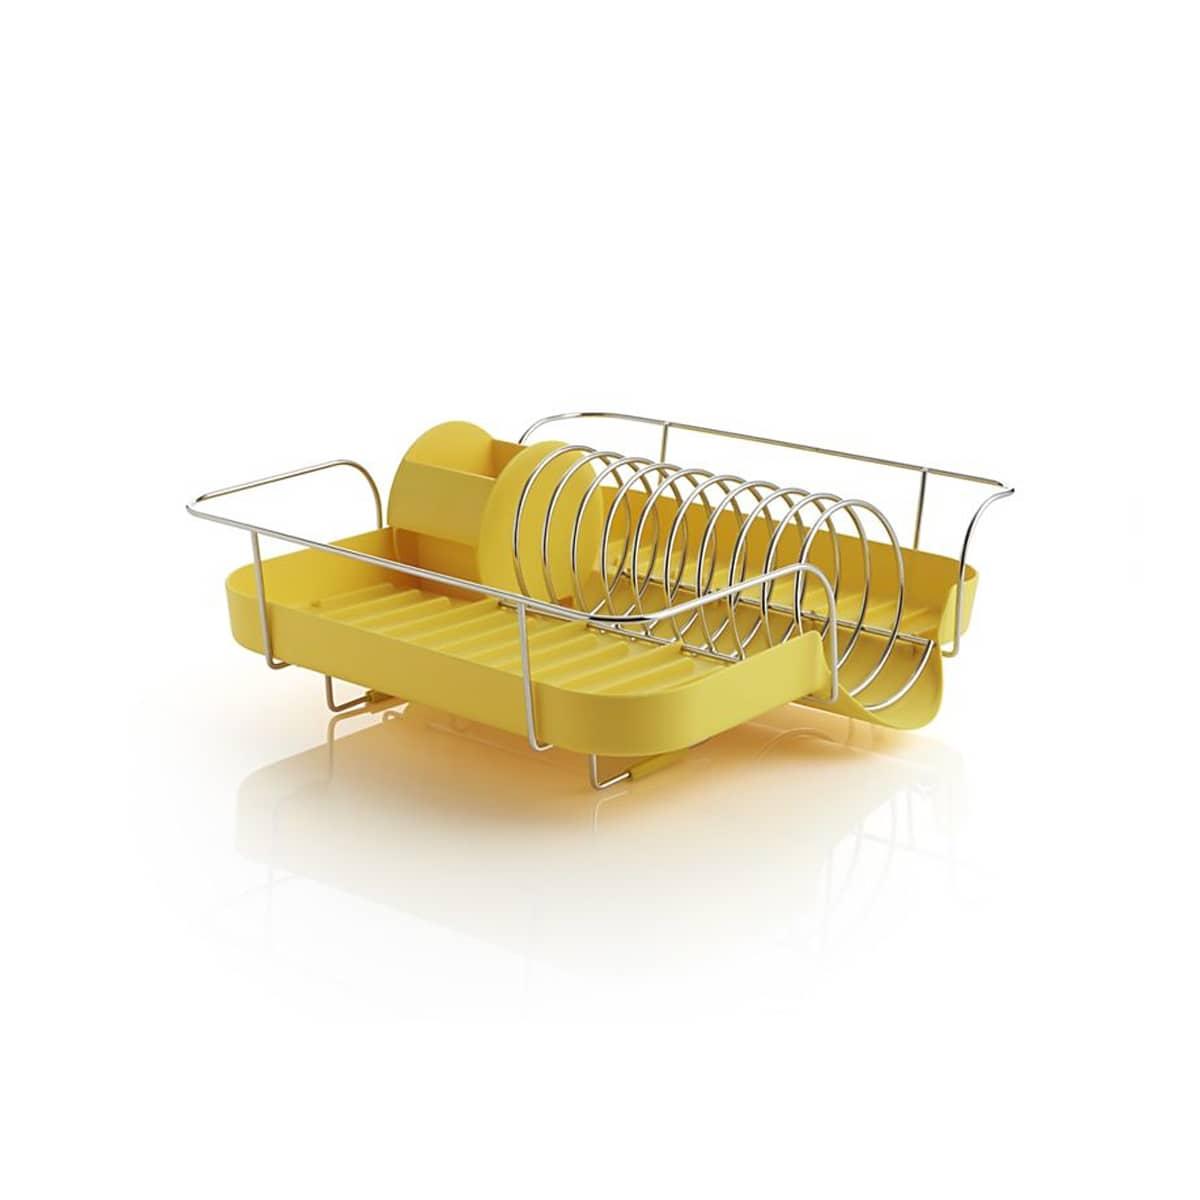 10 Dish Drying Racks That Are Better than a Tea Towel: gallery image 7